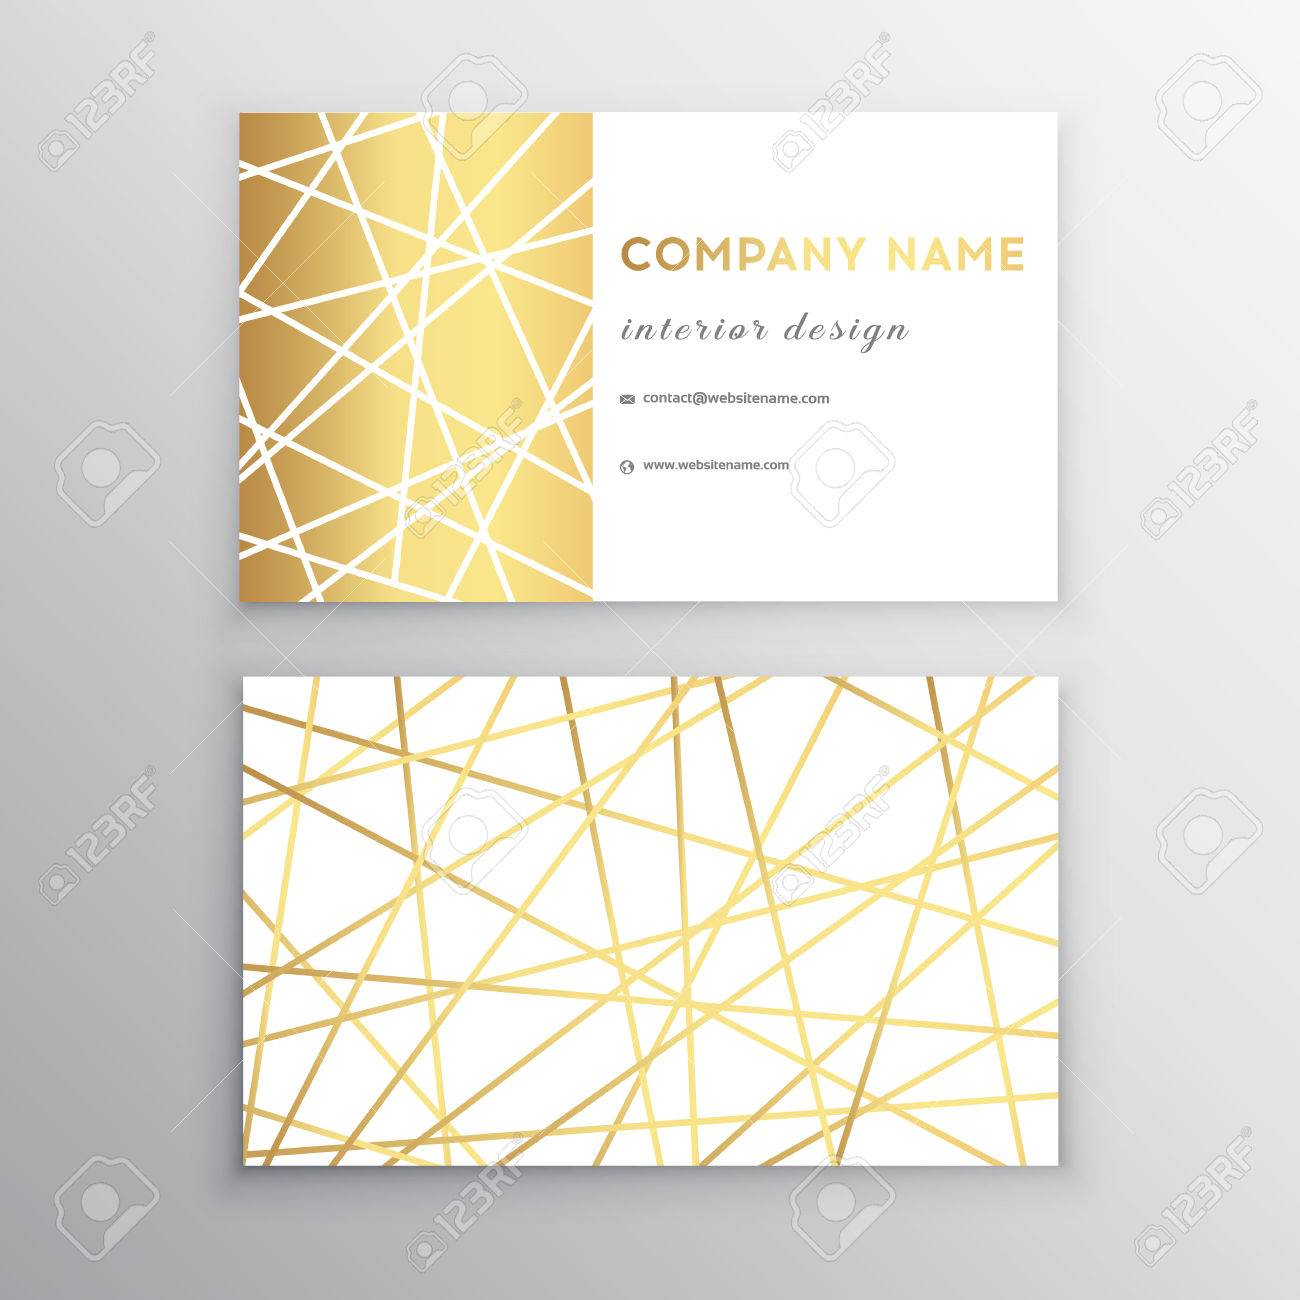 Luxury Business Card Gold And White Horizontal Template Design For Personal Or